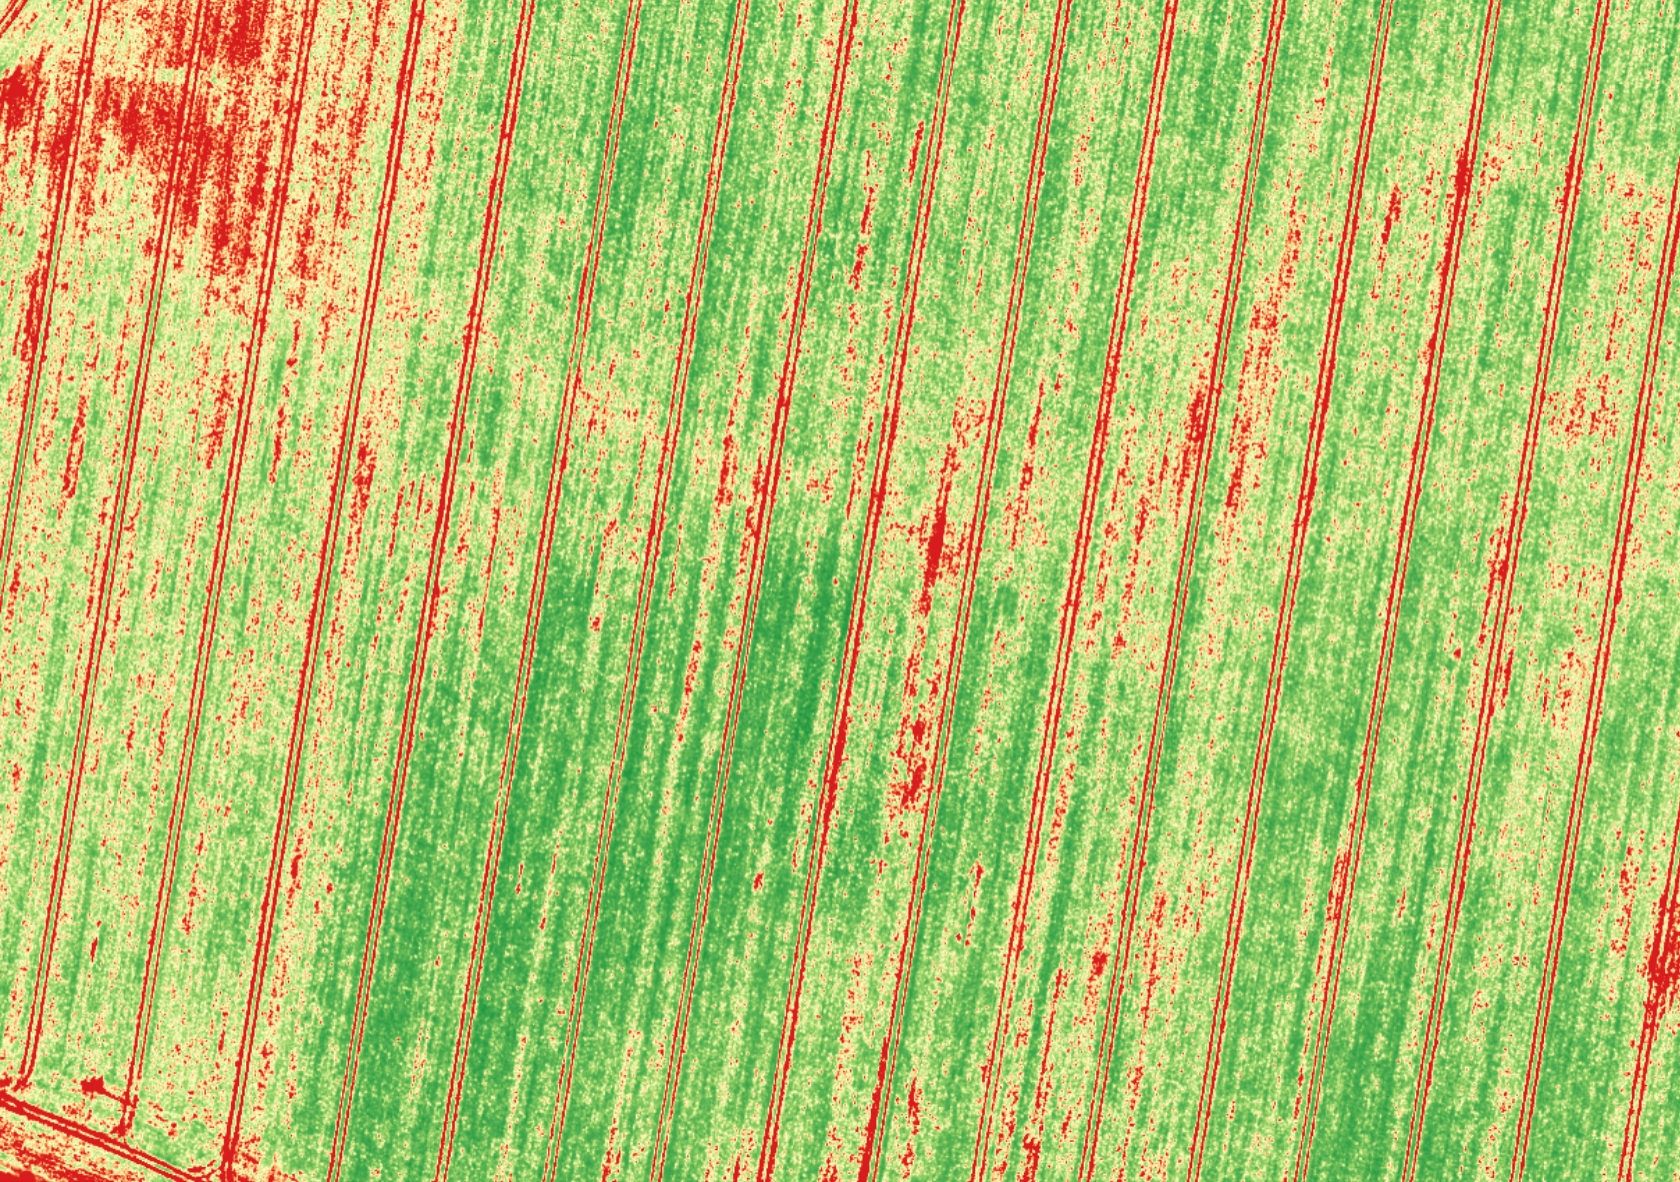 Hyperspectral image of crops